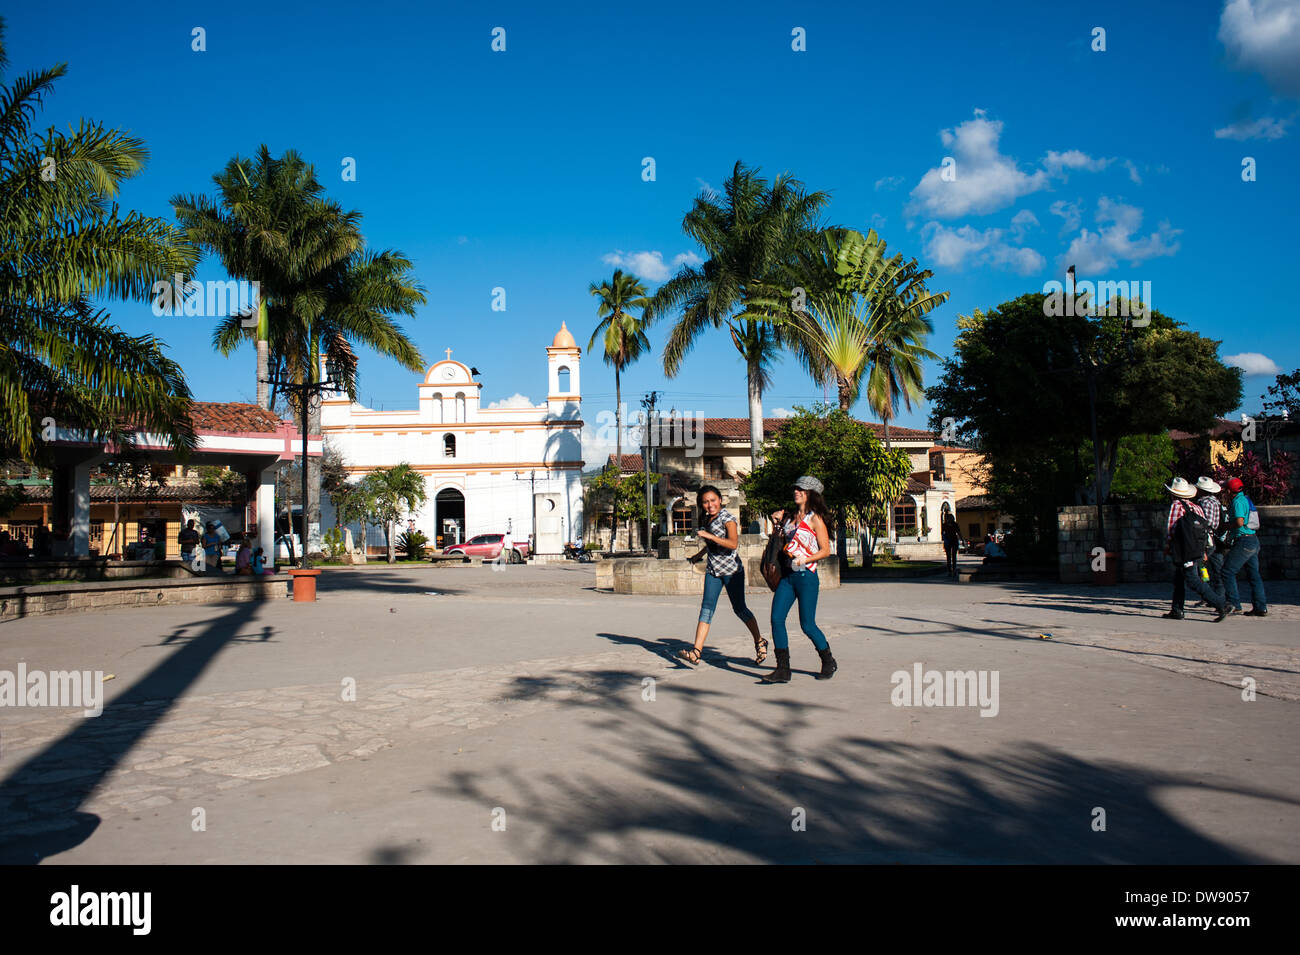 People stroll though Parque Central in the town of Copán Ruinas, Honduras. - Stock Image